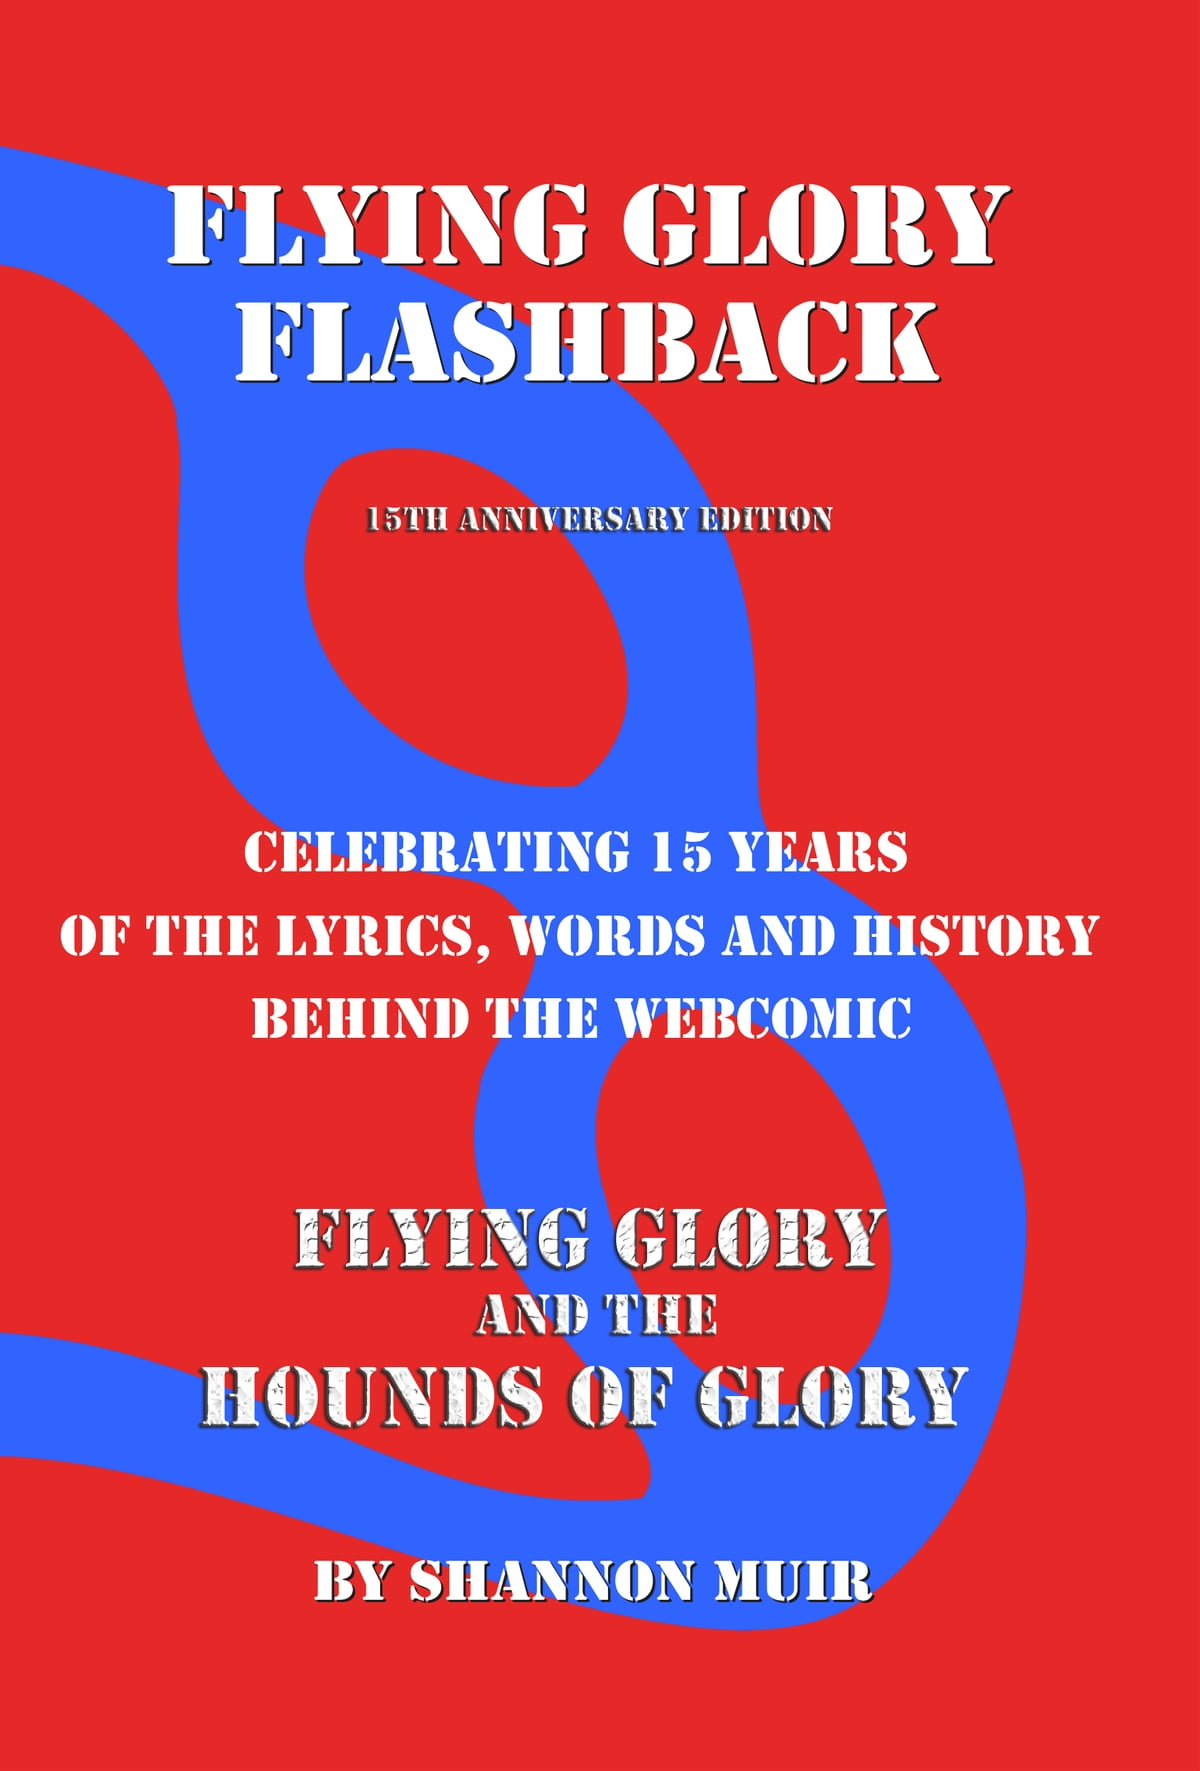 Celebrating 15 Years 15th Vow Renewal Anniversary Or: Flying Glory Flashback: 15th Anniversary Edition